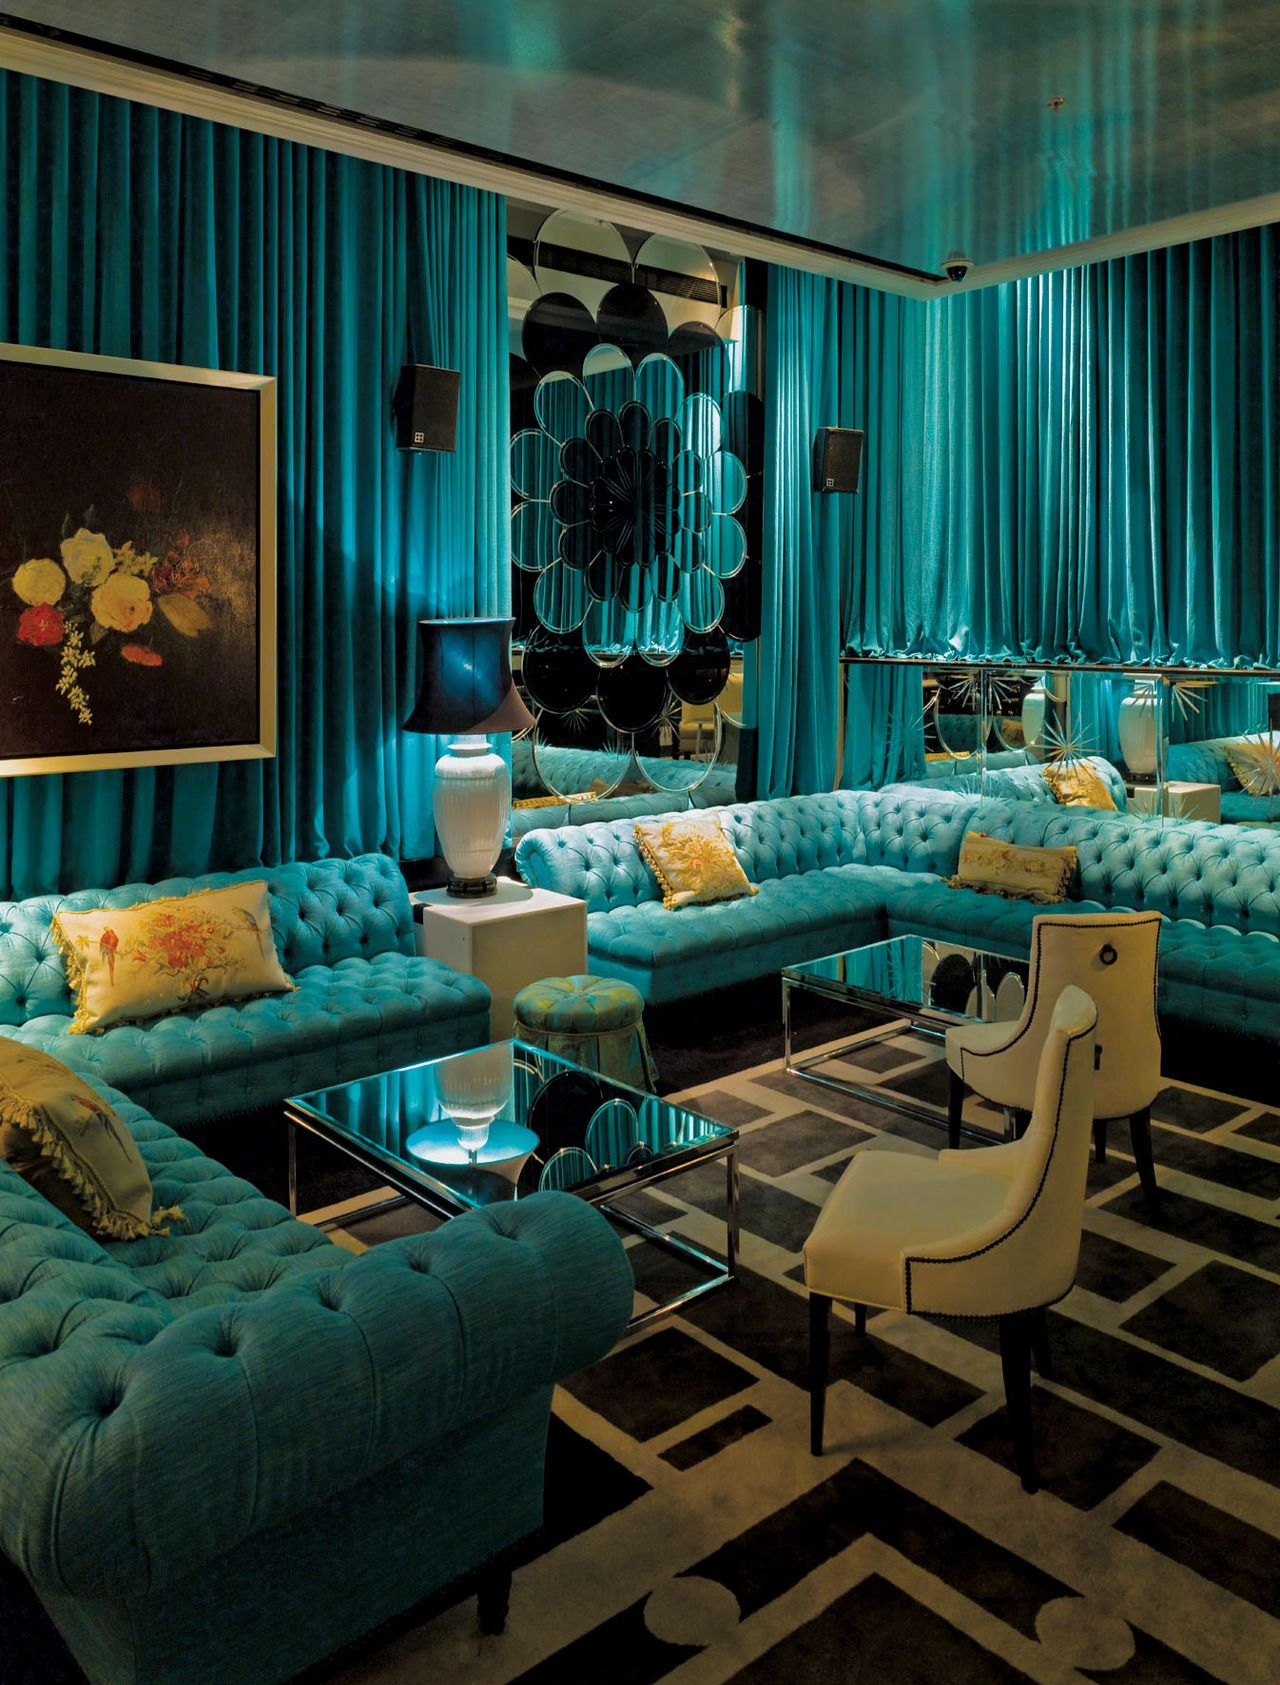 House Of Turquoise Living Room Ideas Too Much For A House But Pretty Darn Amazingturquoise Colour .